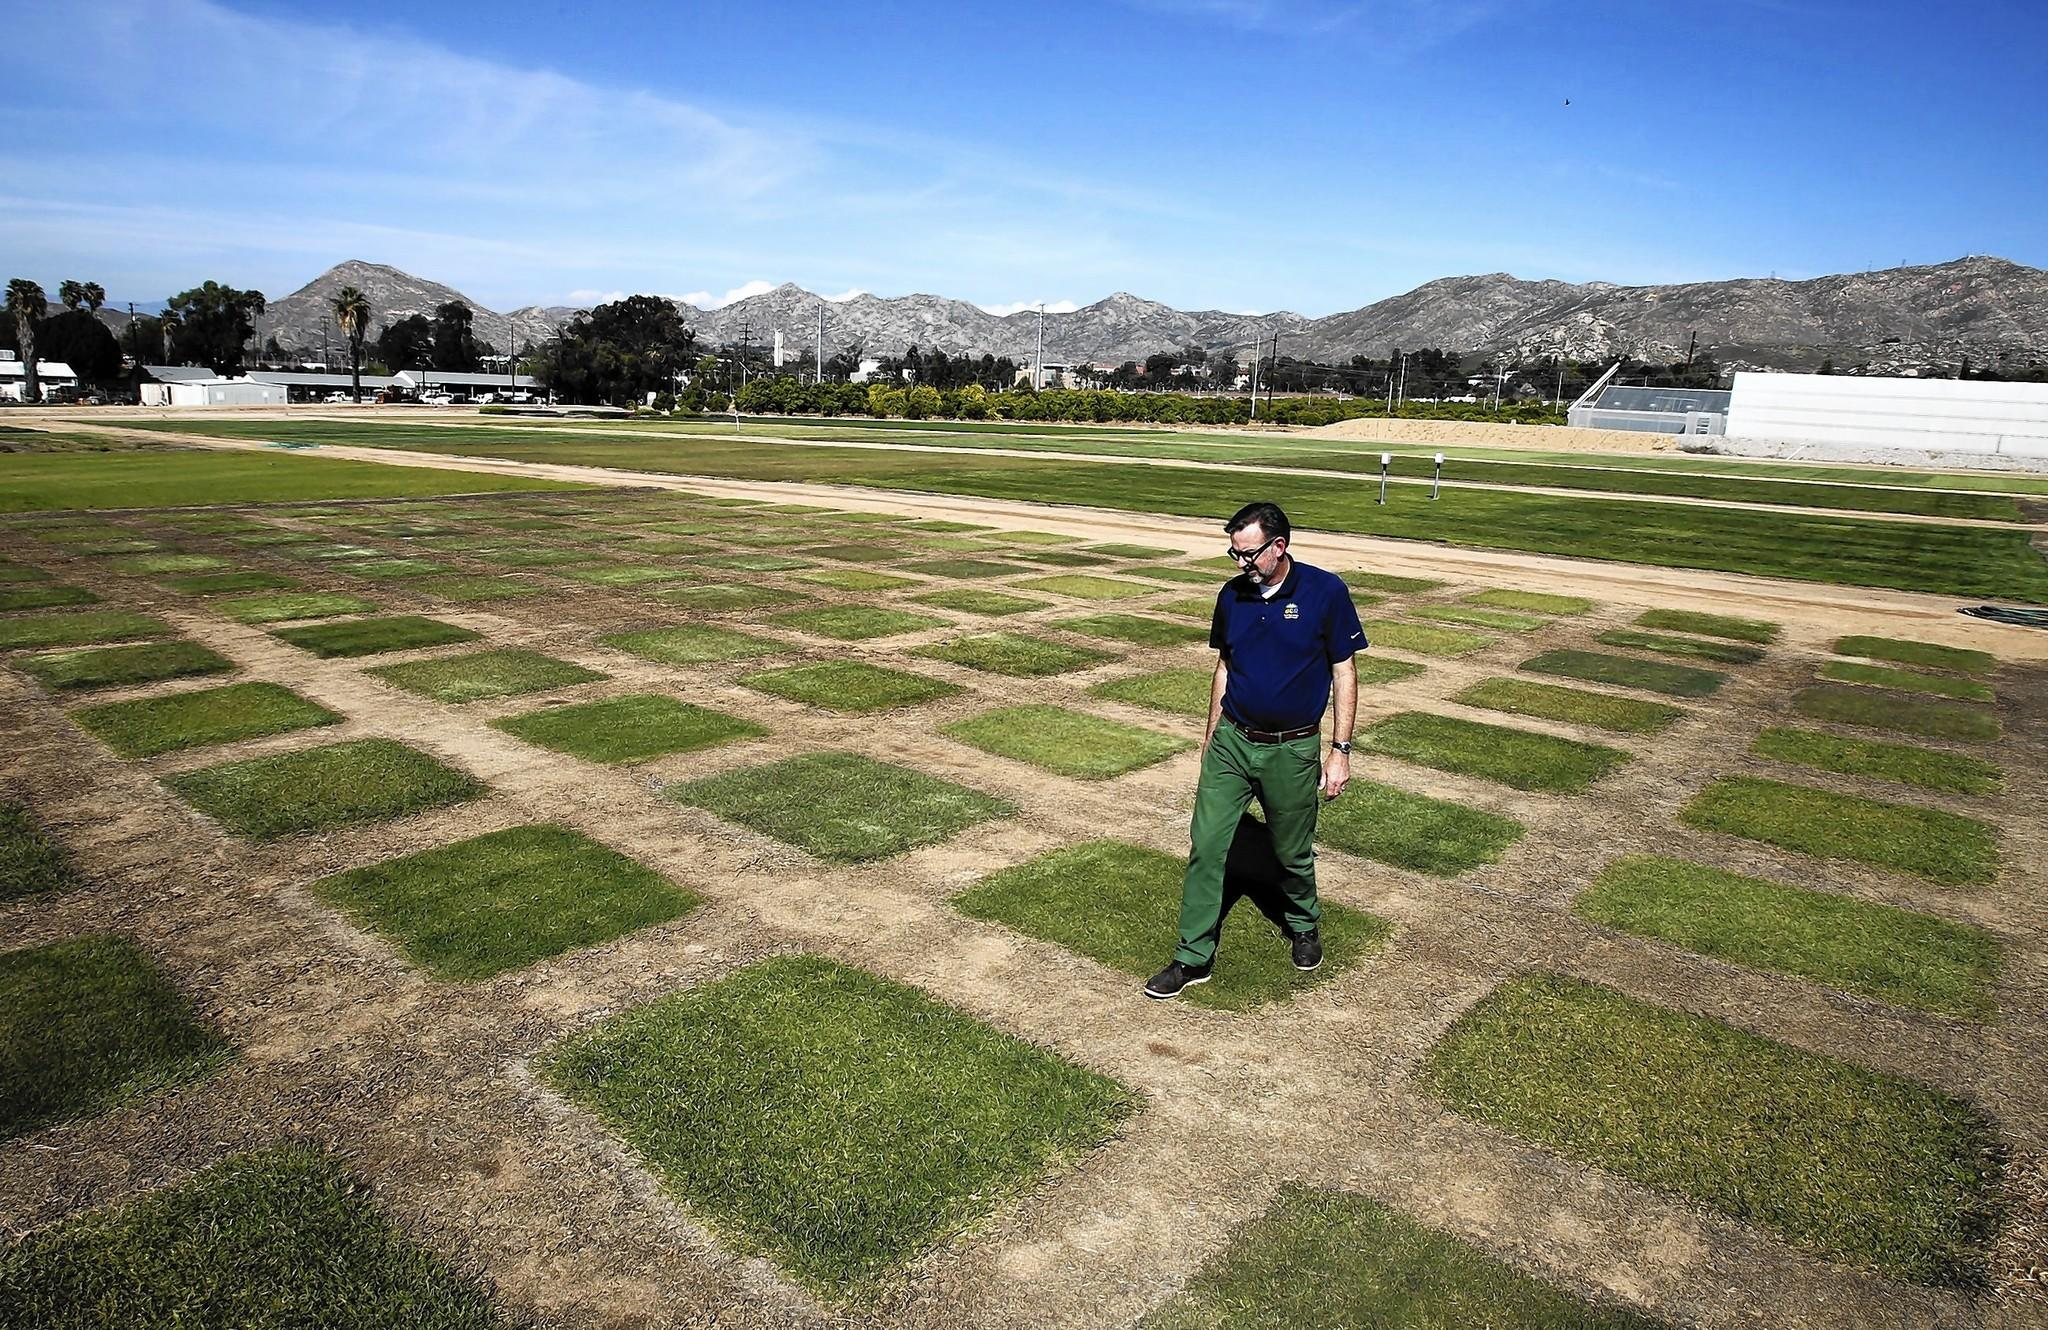 UC Riverside turfgrass specialist and researcher Jim Baird walks through patches of commercial and experimental Bermudagrass that is being evaluated for drought tolerance.